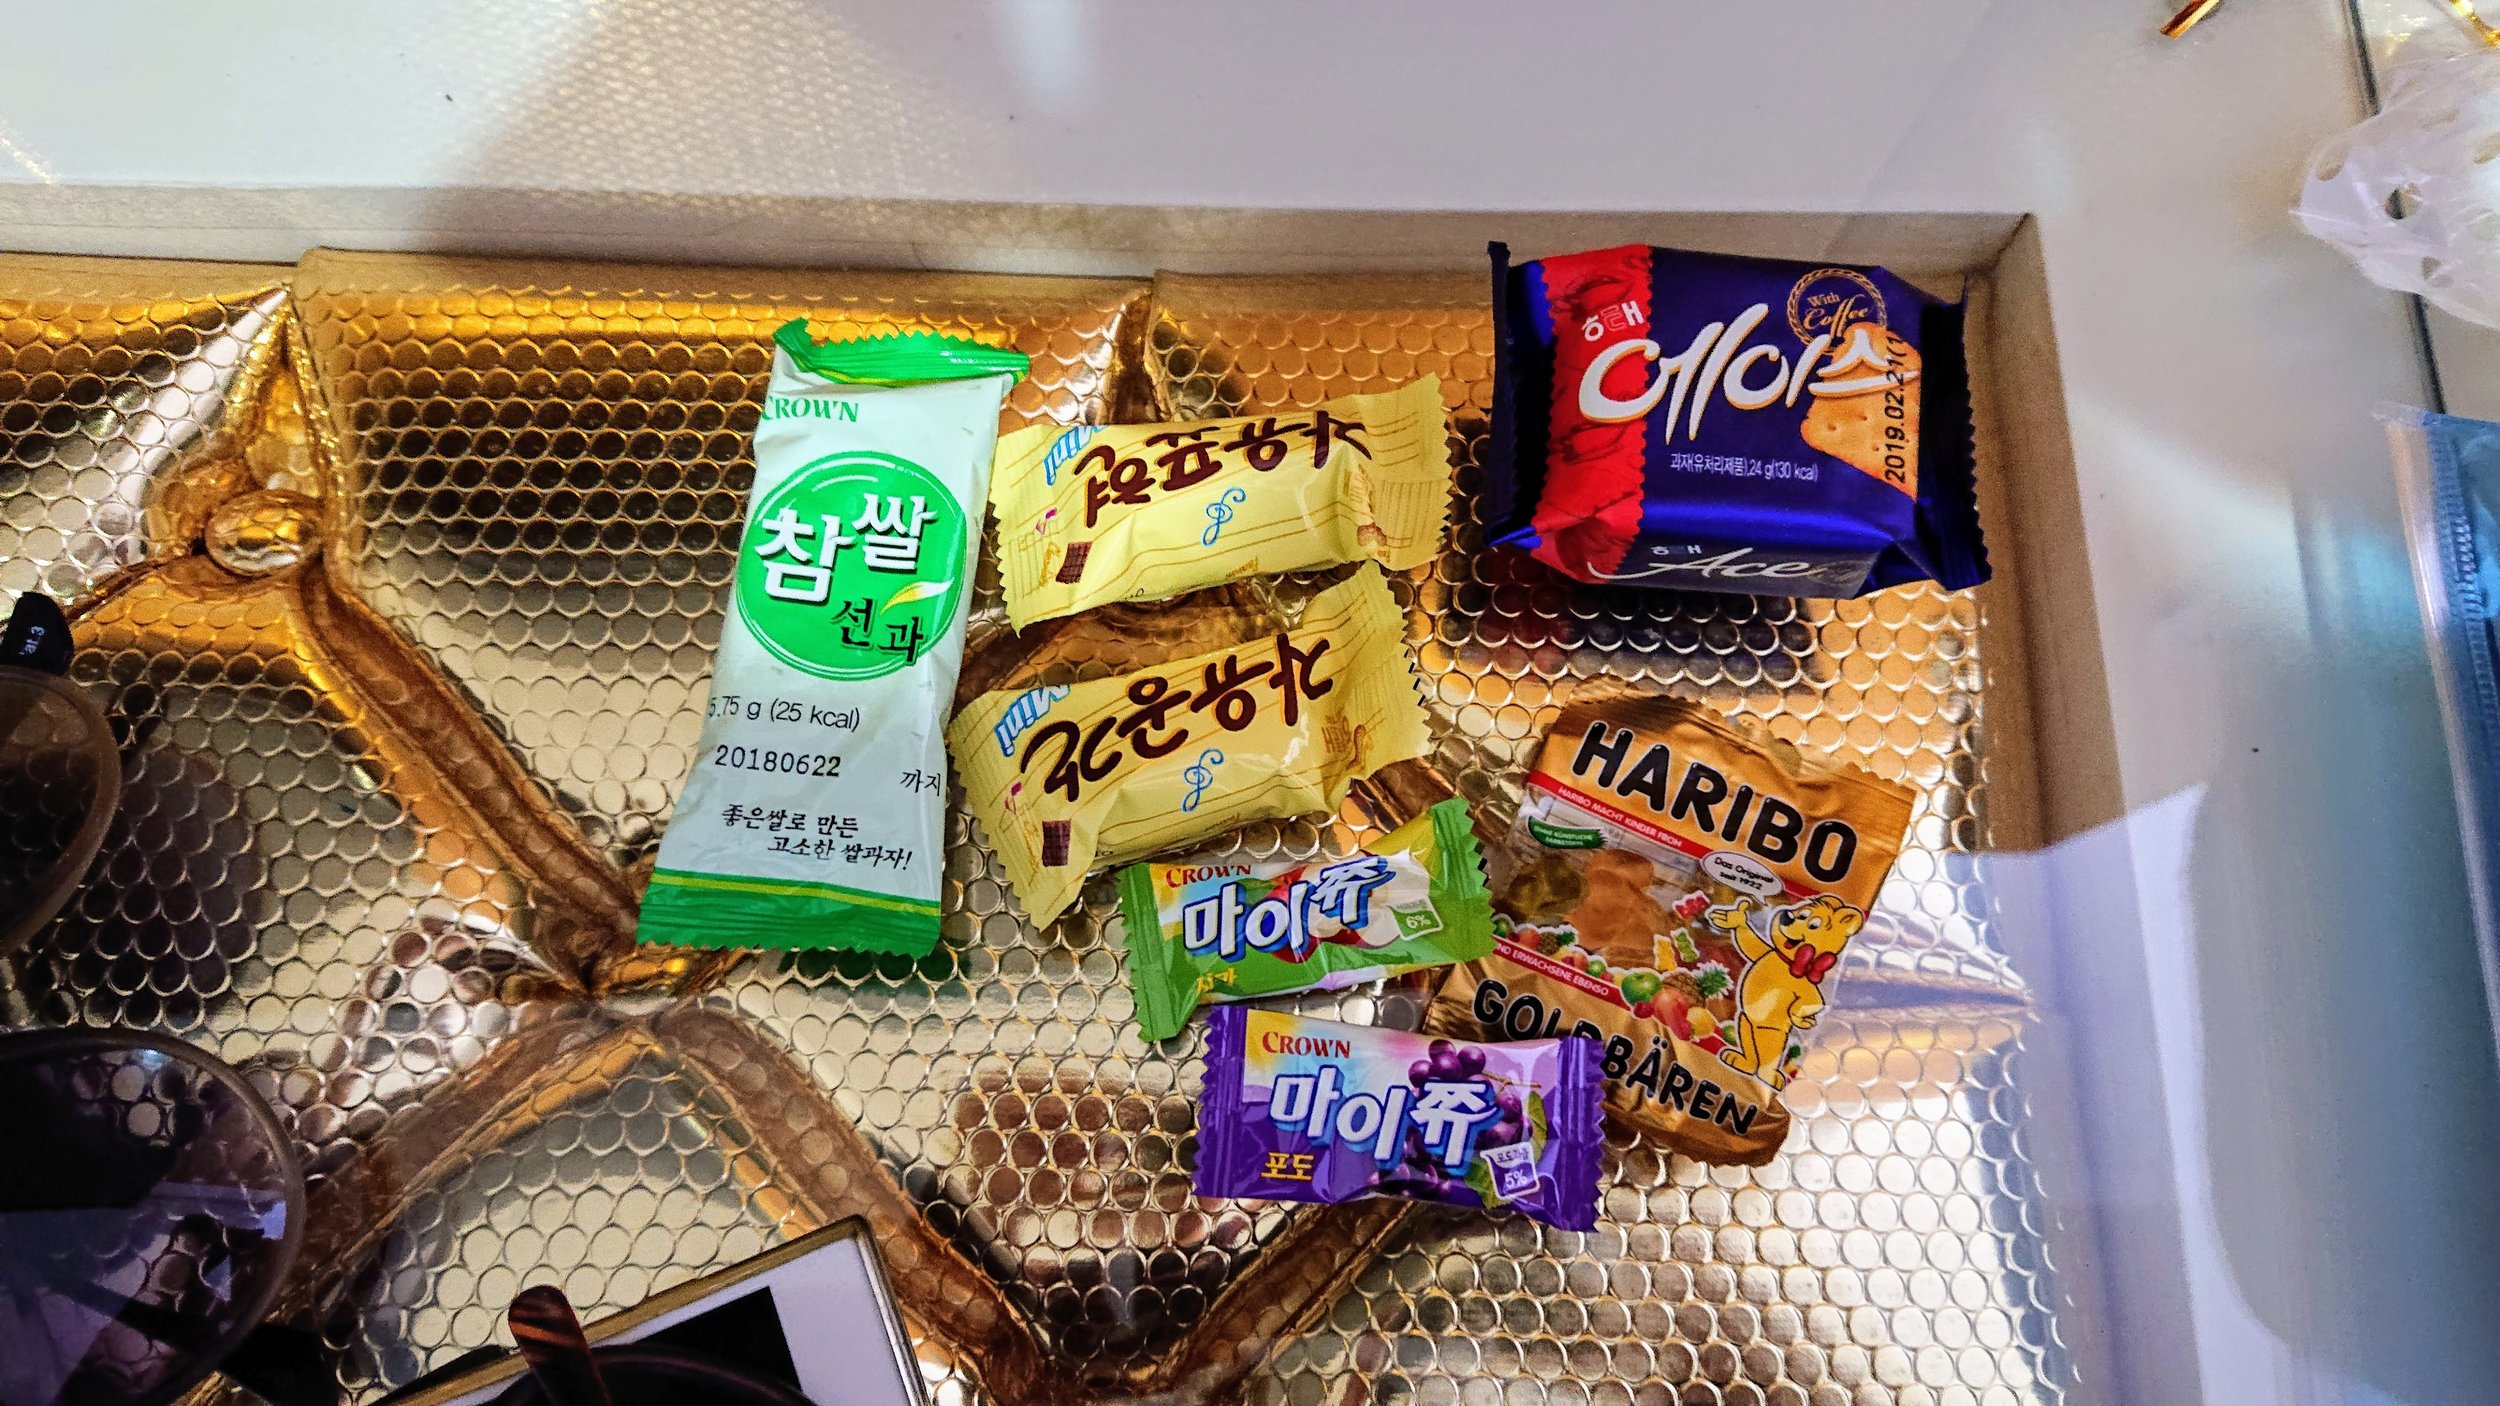 The toiletries bag in this hotel came with Korean snacks!